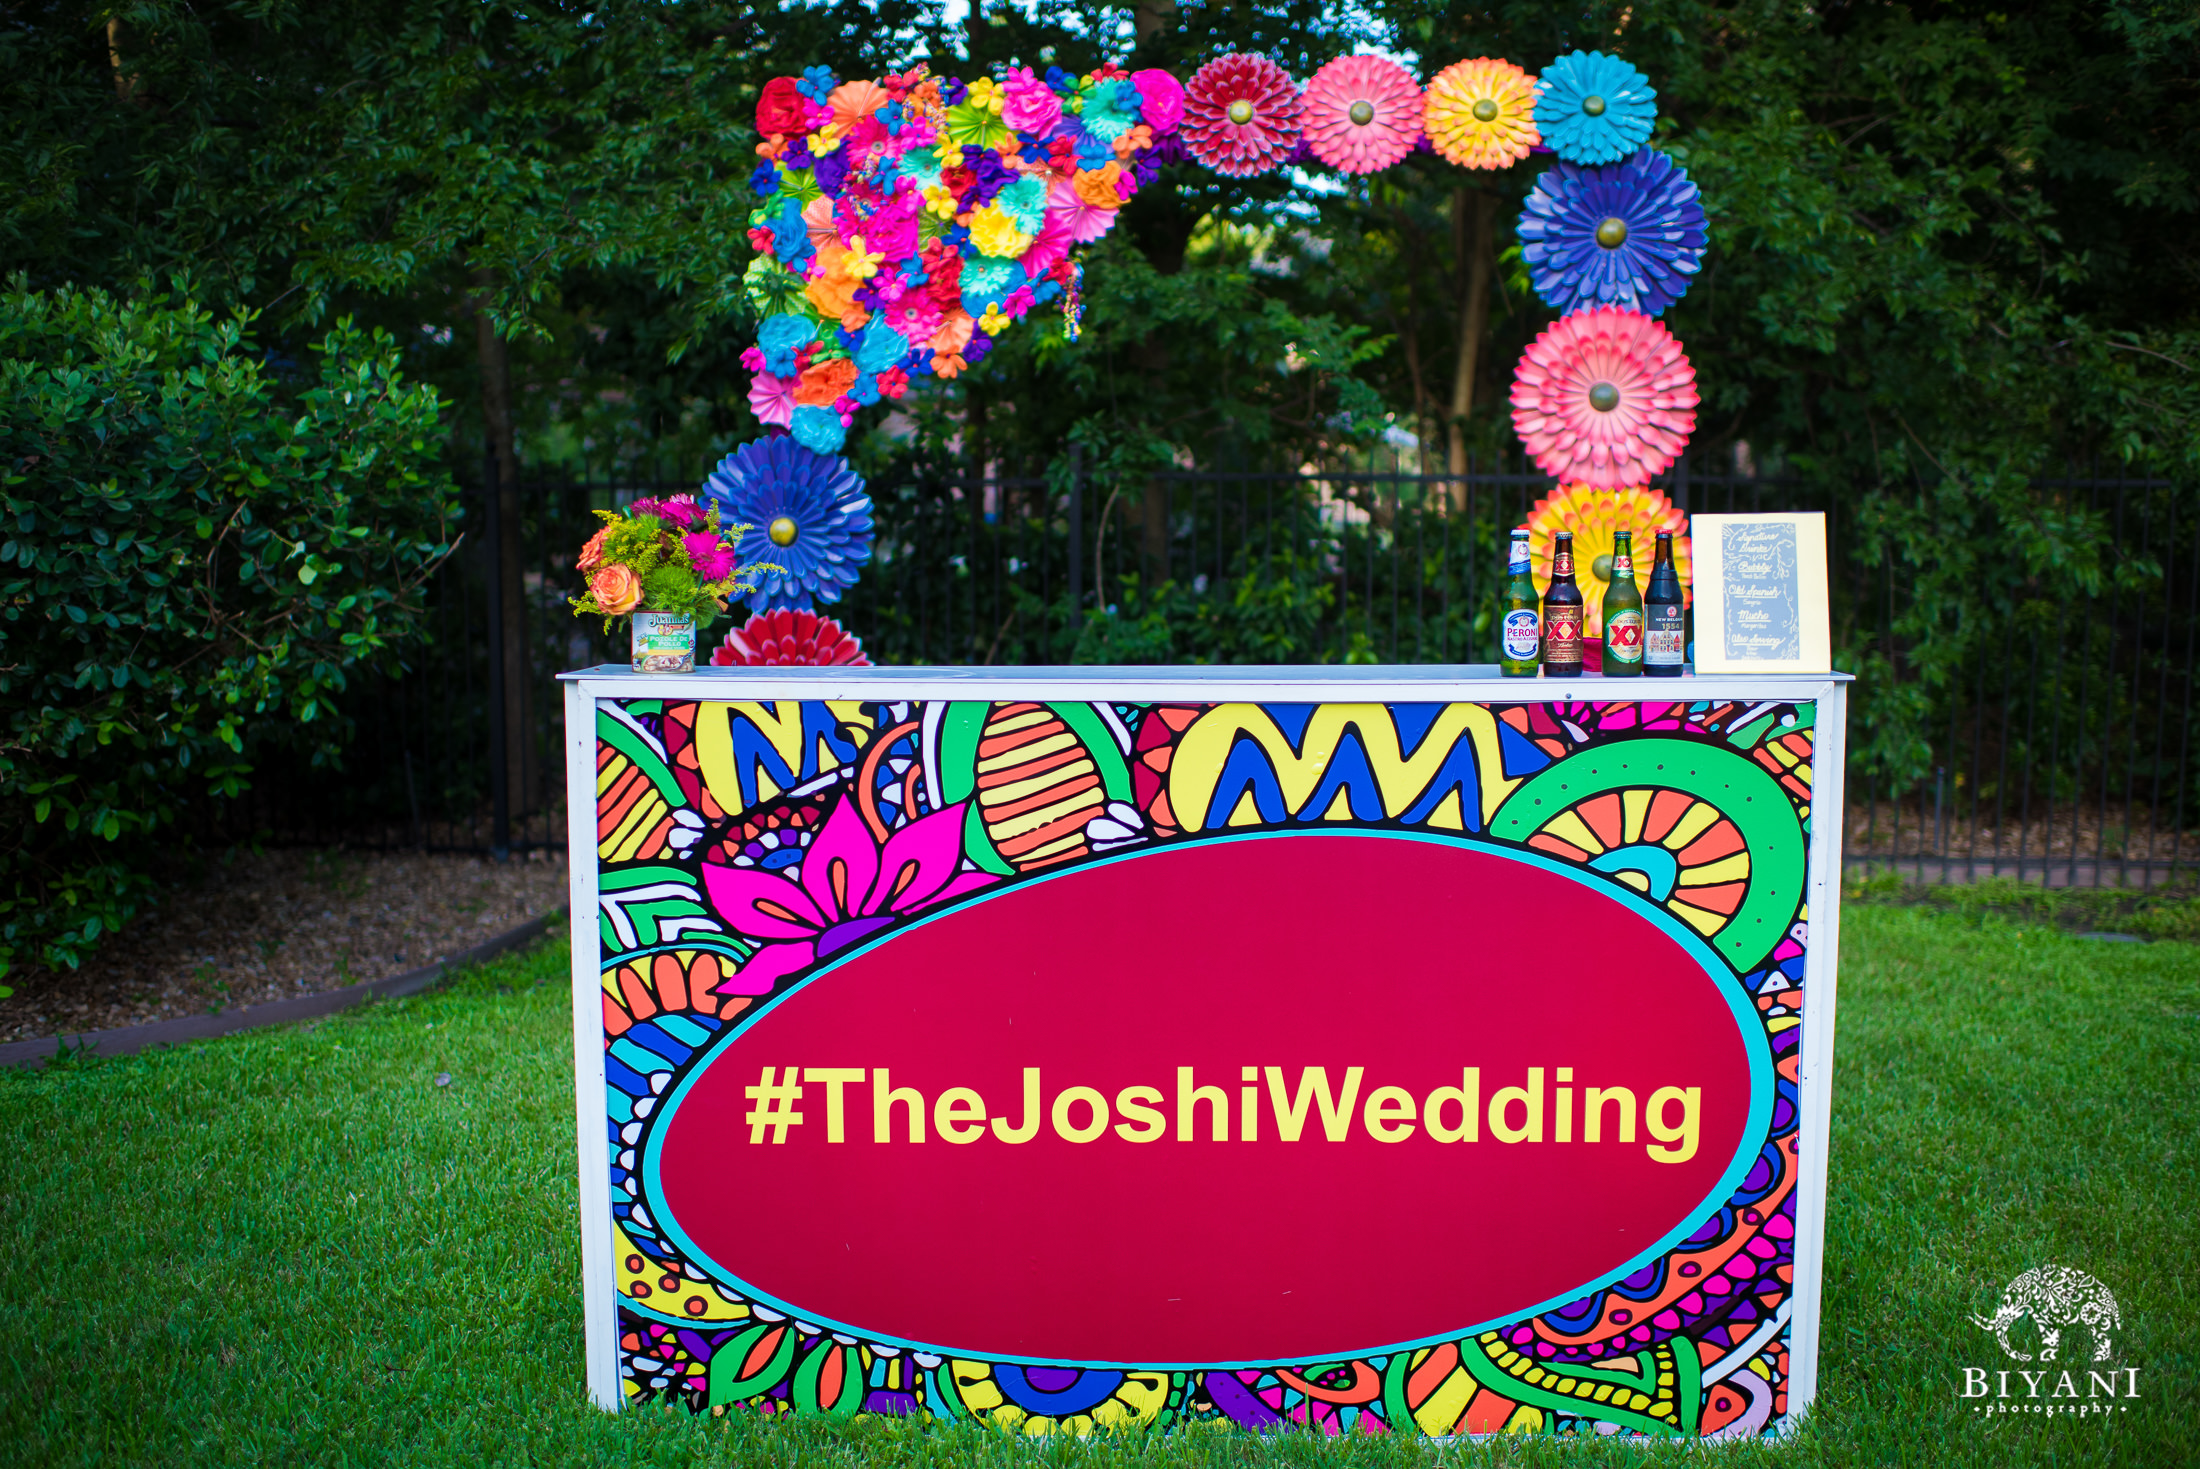 #thejoshiwedding backyard decor